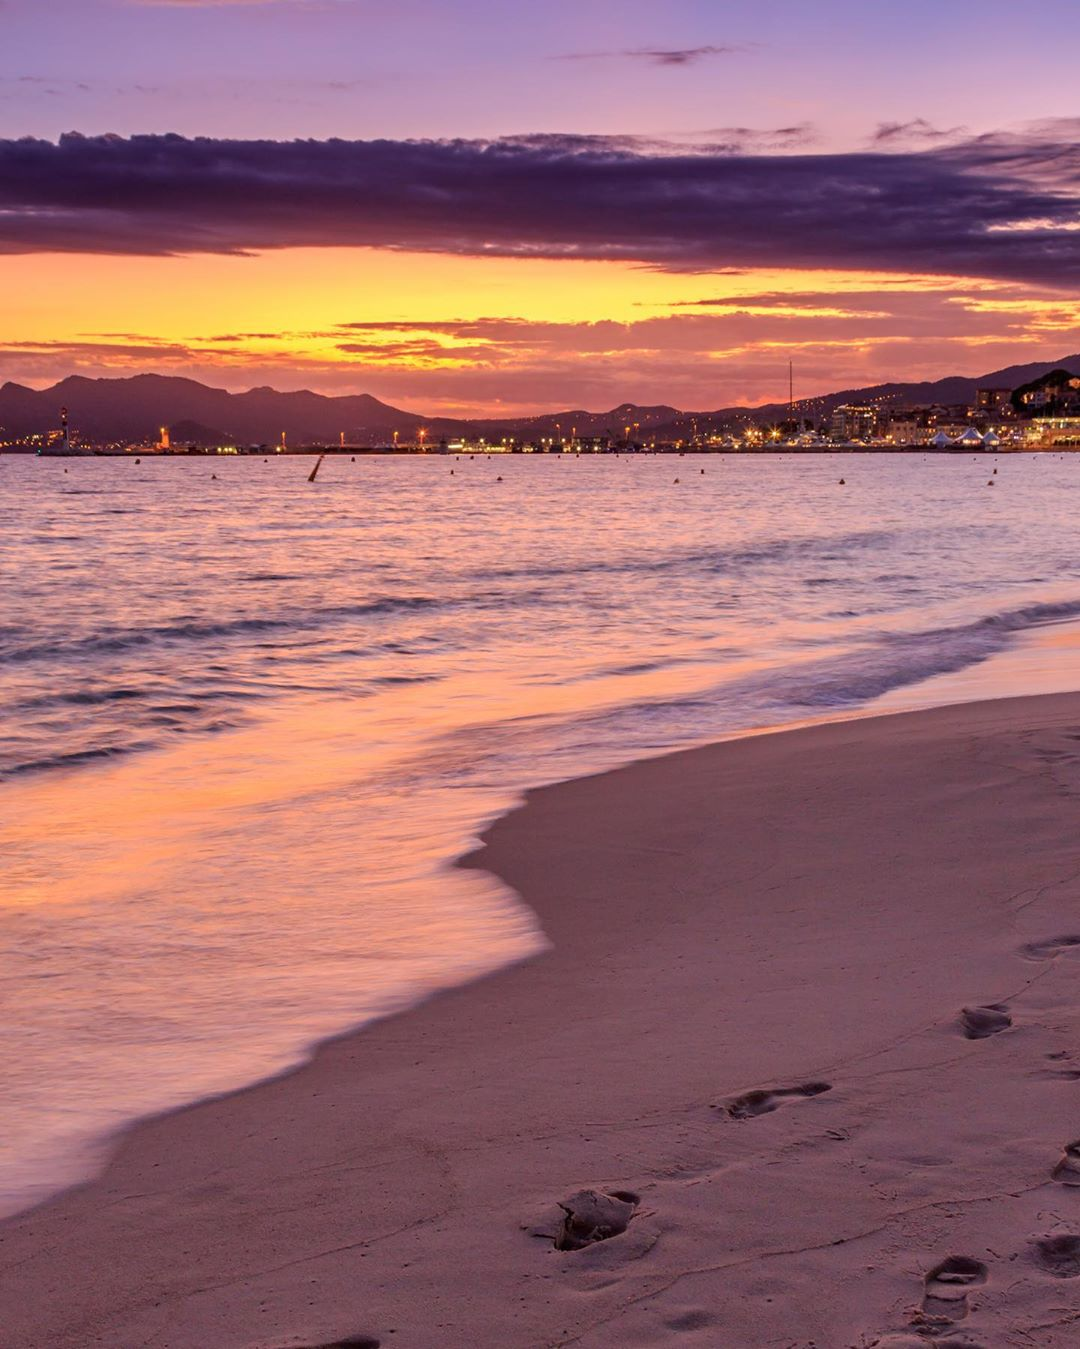 Sunset - Romantic weekend in Cannes - Credit slpcannes